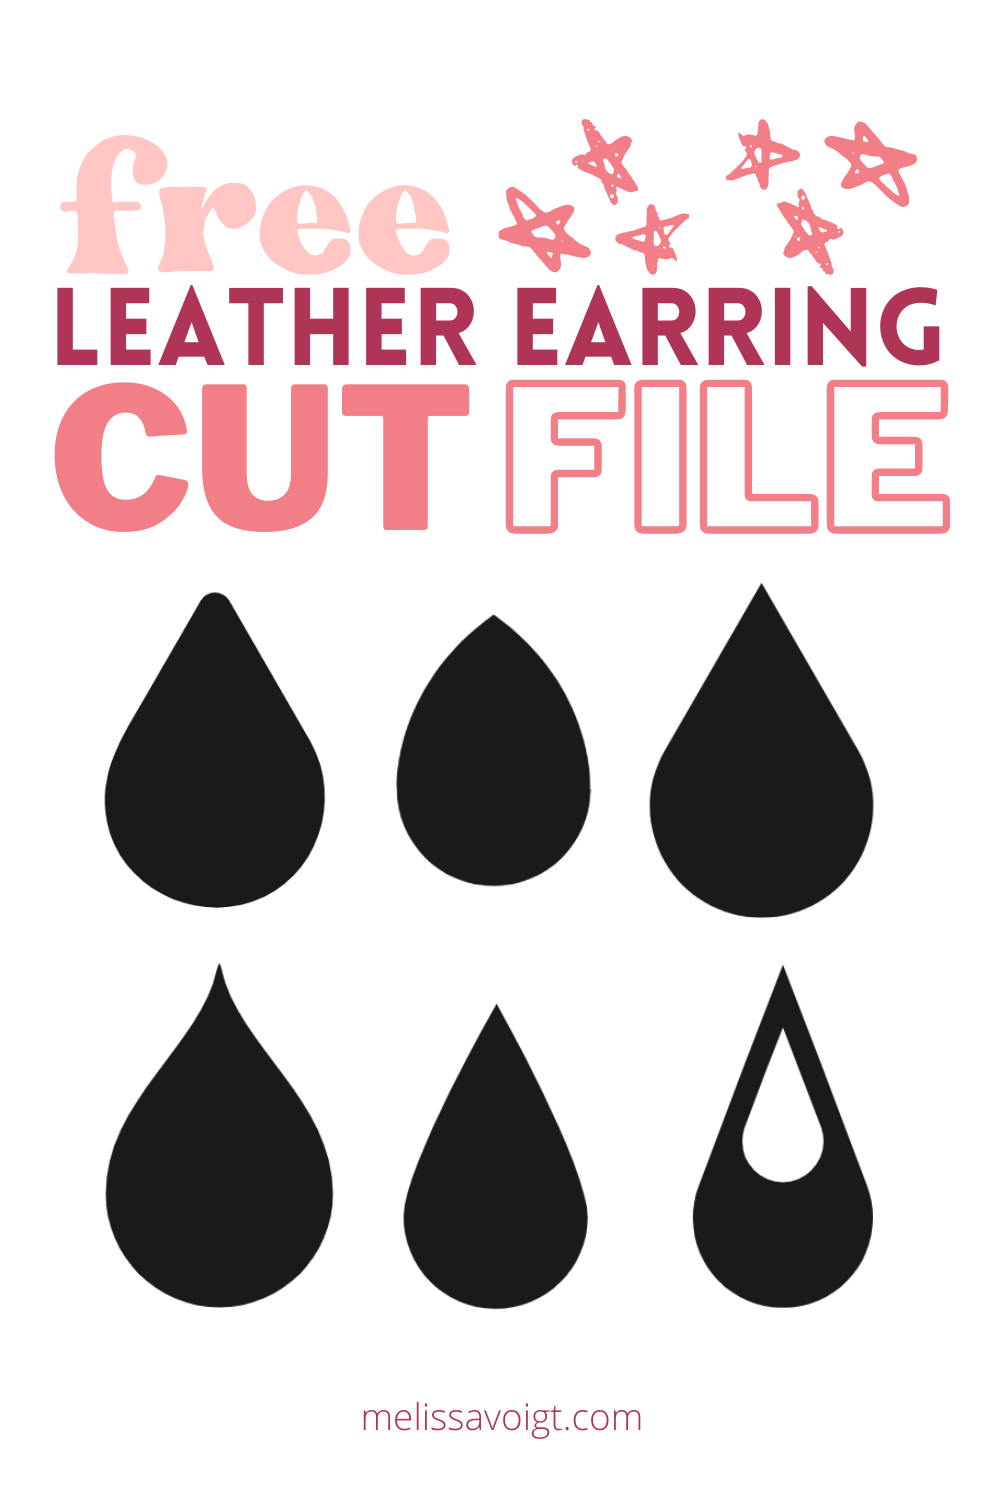 Faux Leather Earring Template : leather, earring, template, CRICUT, TEARDROP, EARRING, TEMPLATES, Melissa, Voigt